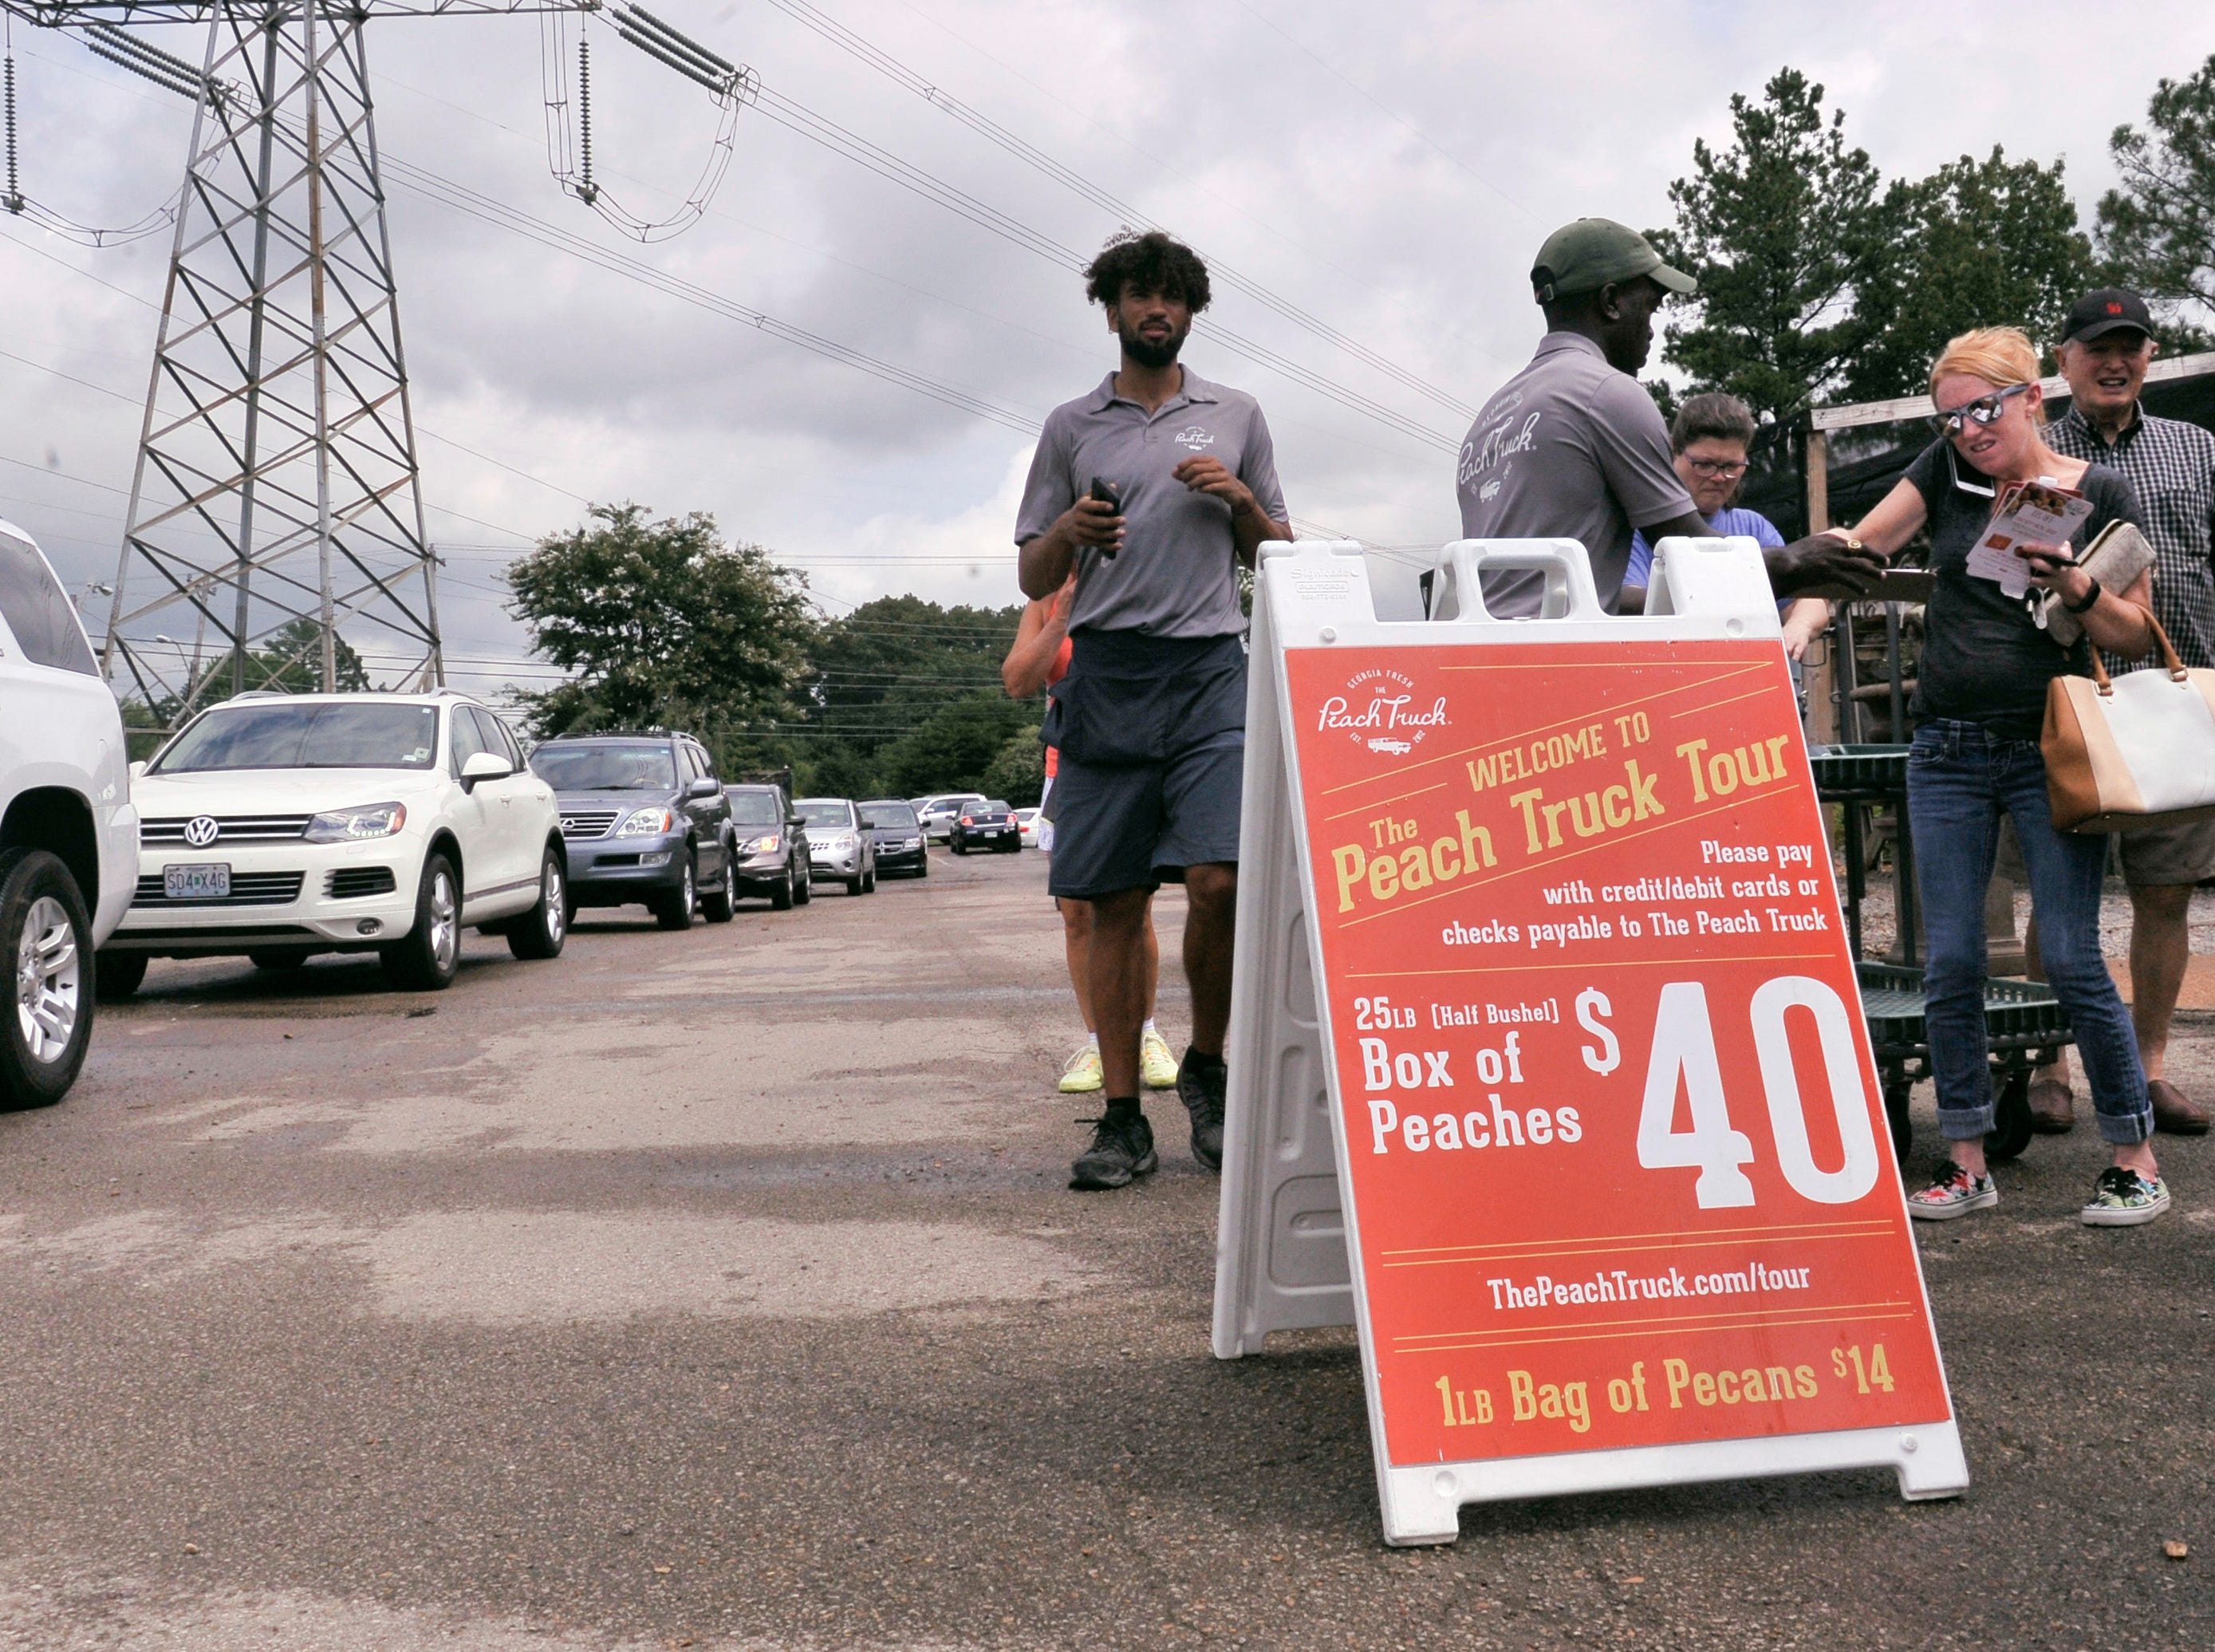 The Peach Truck visited Germantown on Wednesday.